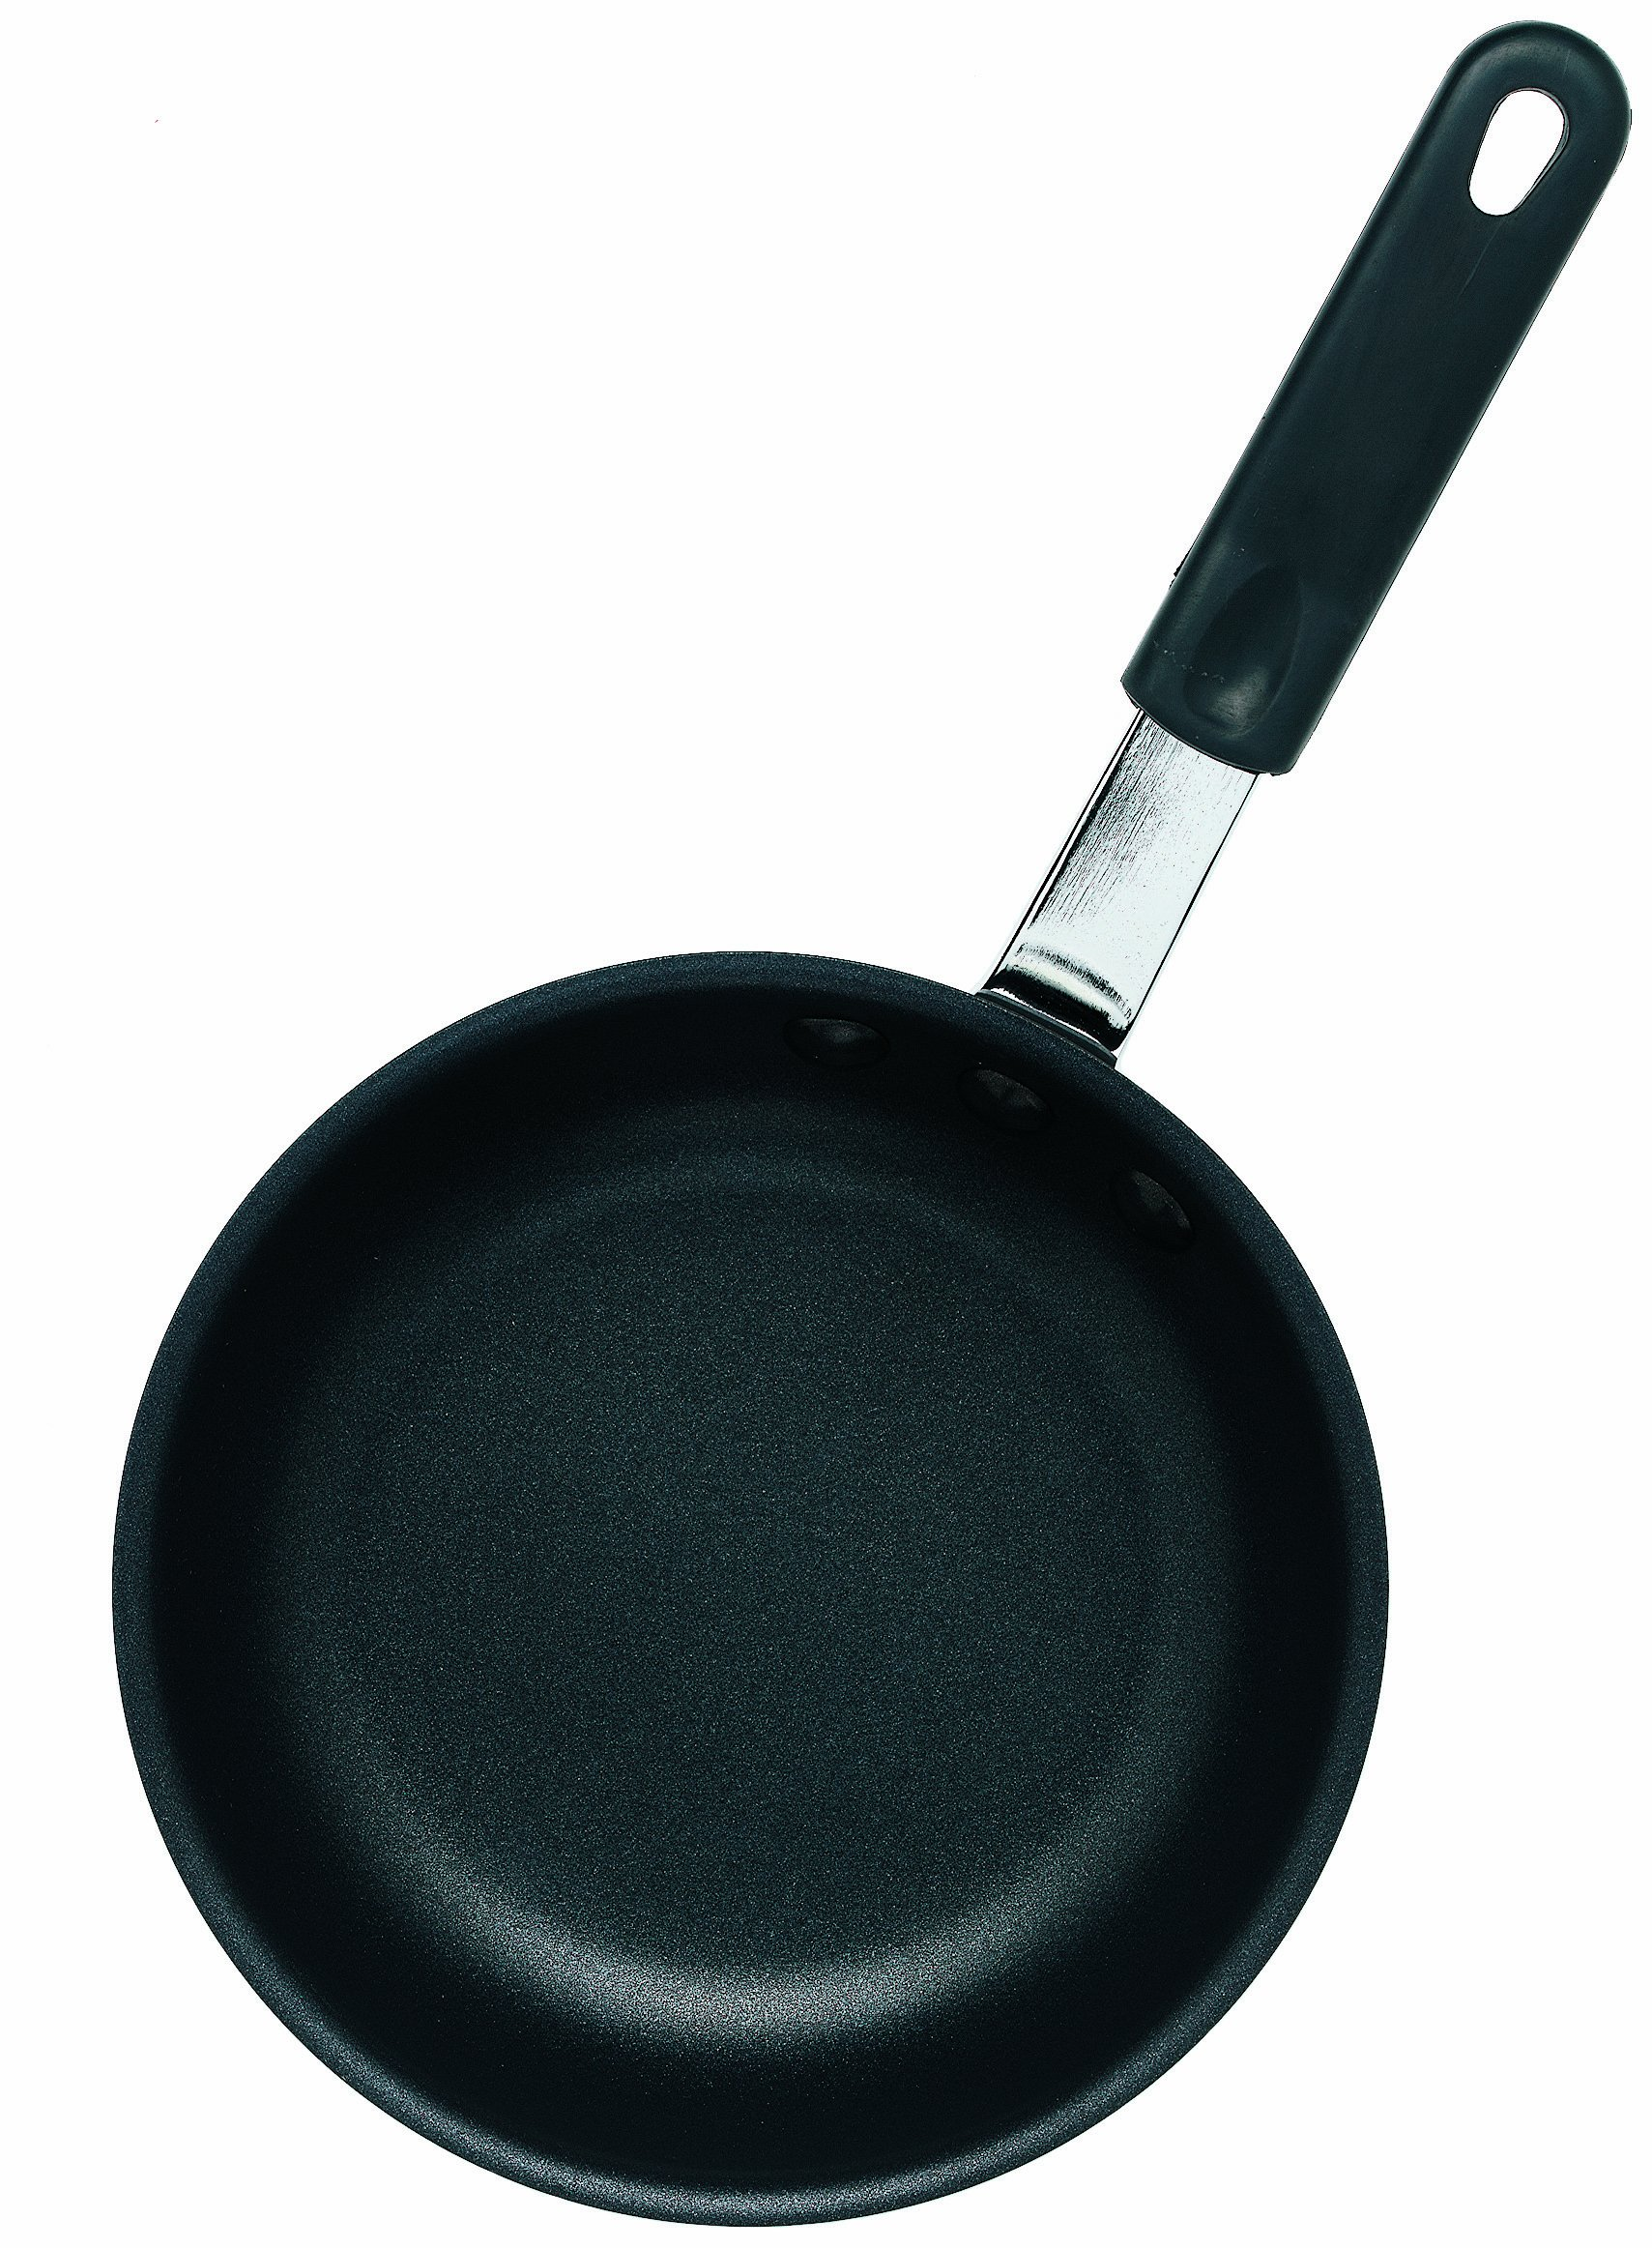 Crestware 7-1/2-Inch Black Pearl Anodized Fry Pans with DuPont Platinum Pro Coating with Molded Handle